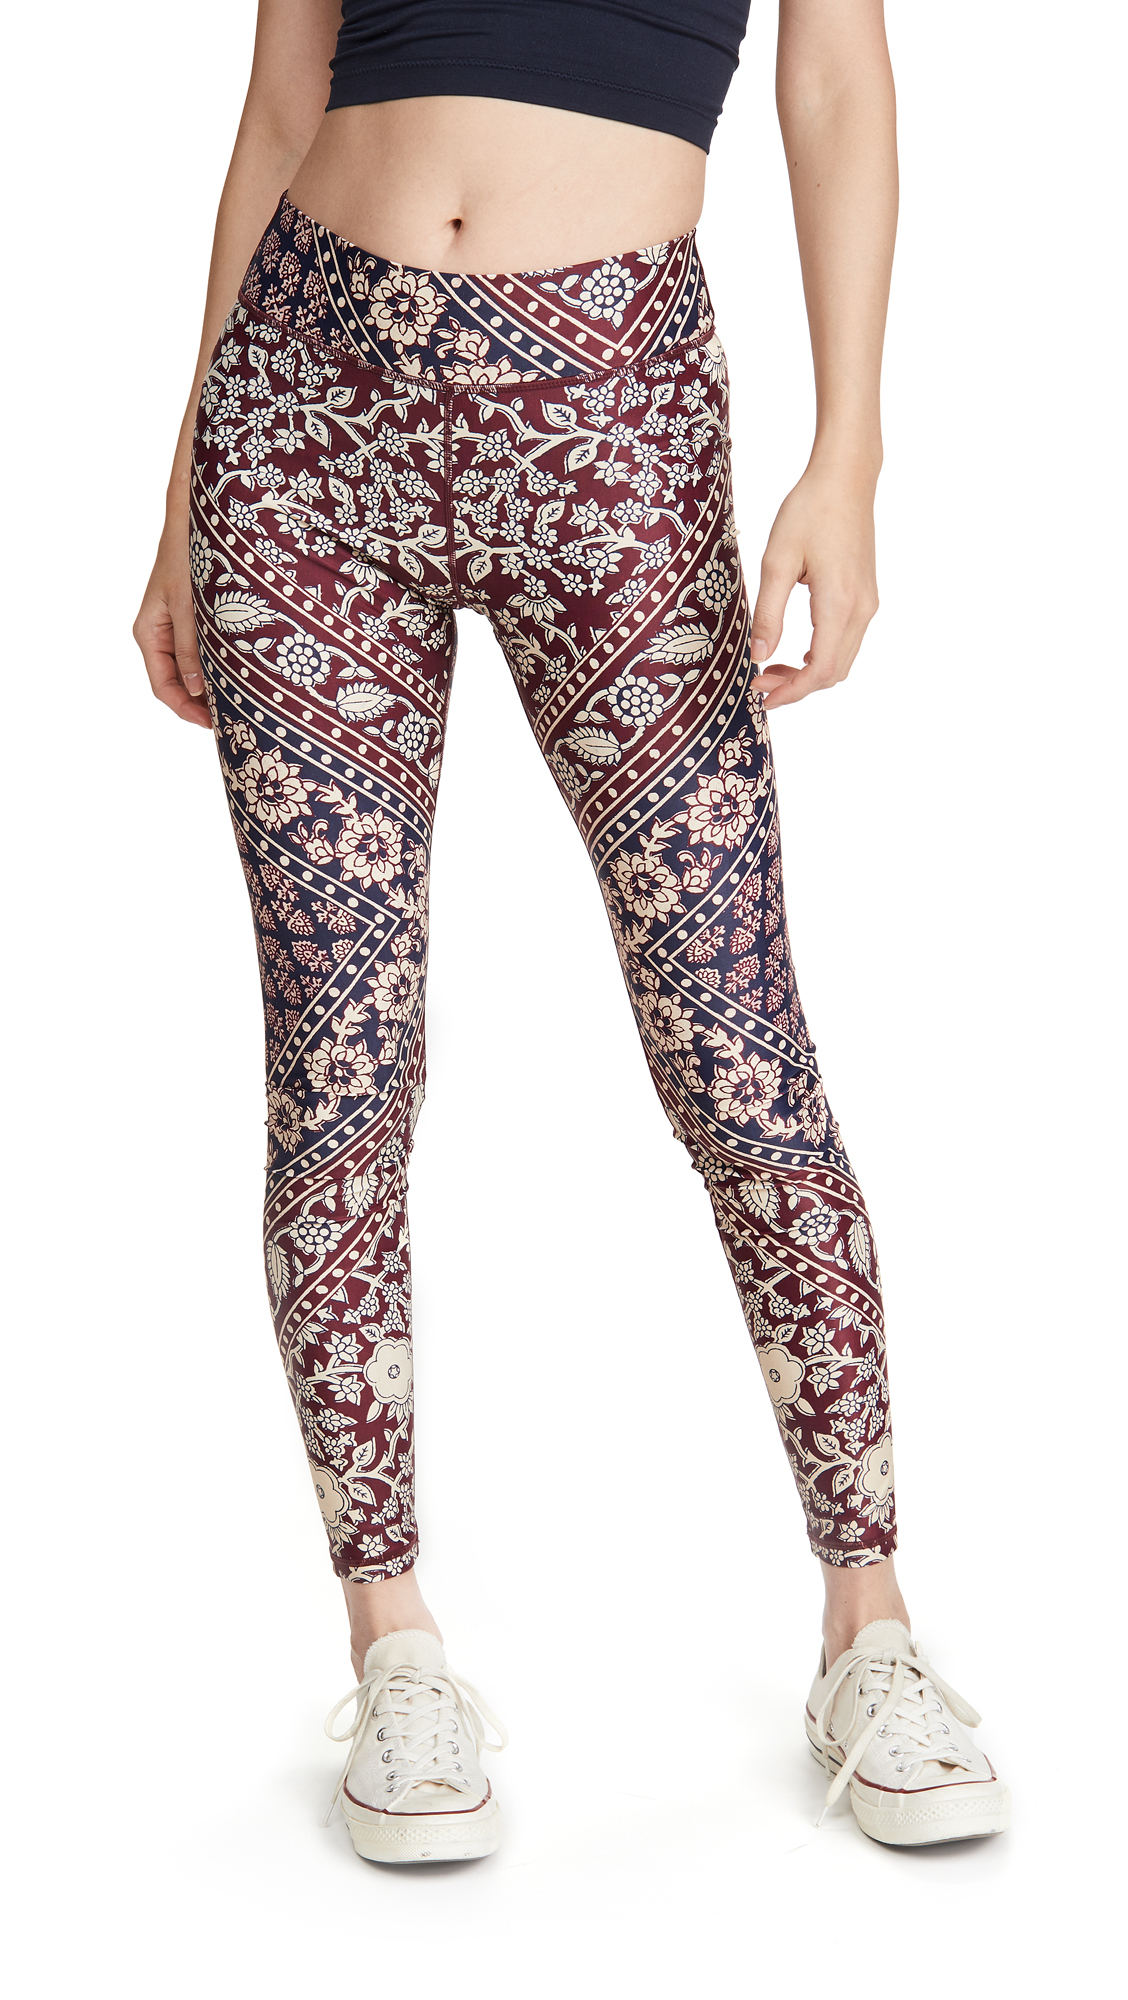 The Upside Turkish Yoga Pants